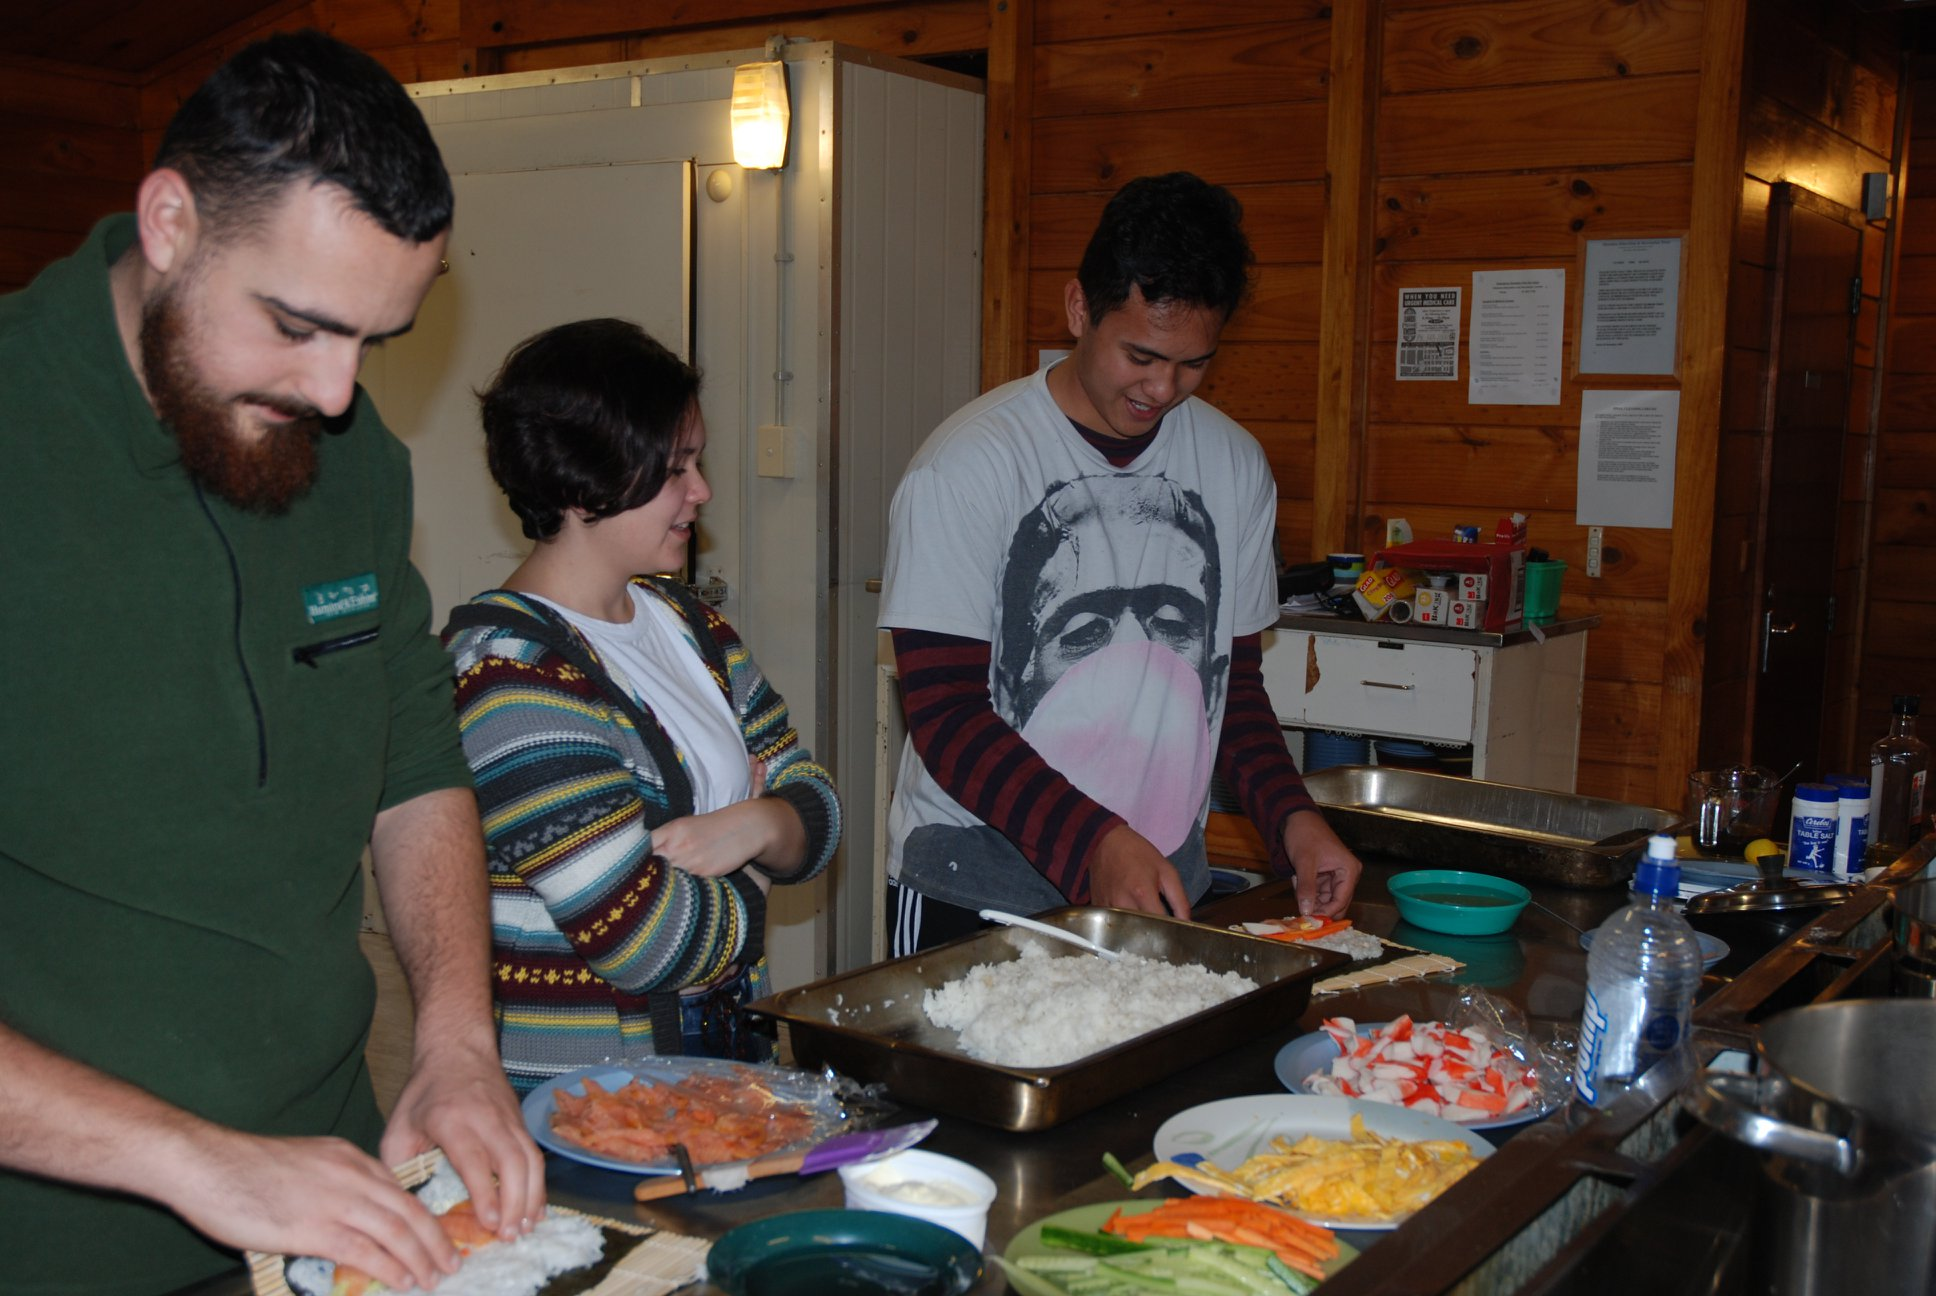 Participants learn to roll sushi during an arts workshop